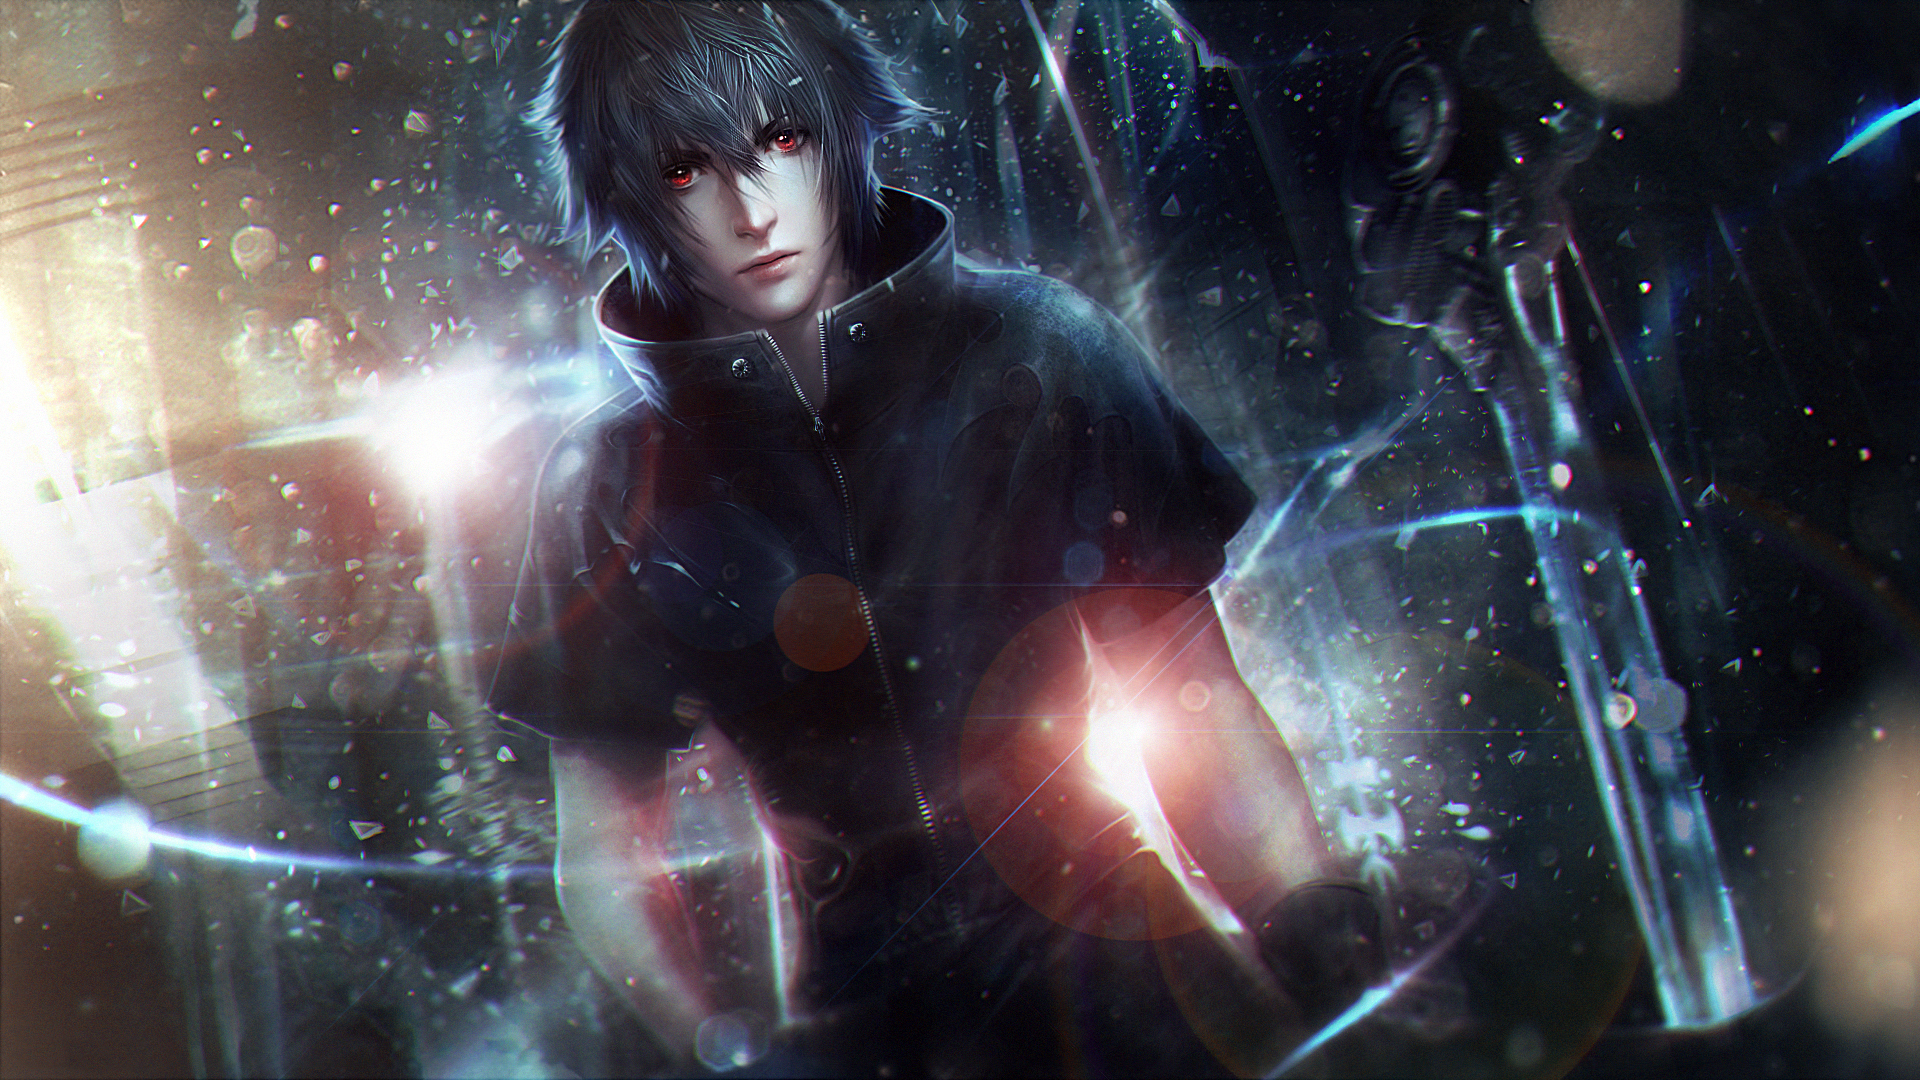 Final Fantasy 15 Noctis Wallpapers 1080p Is Cool Wallpapers